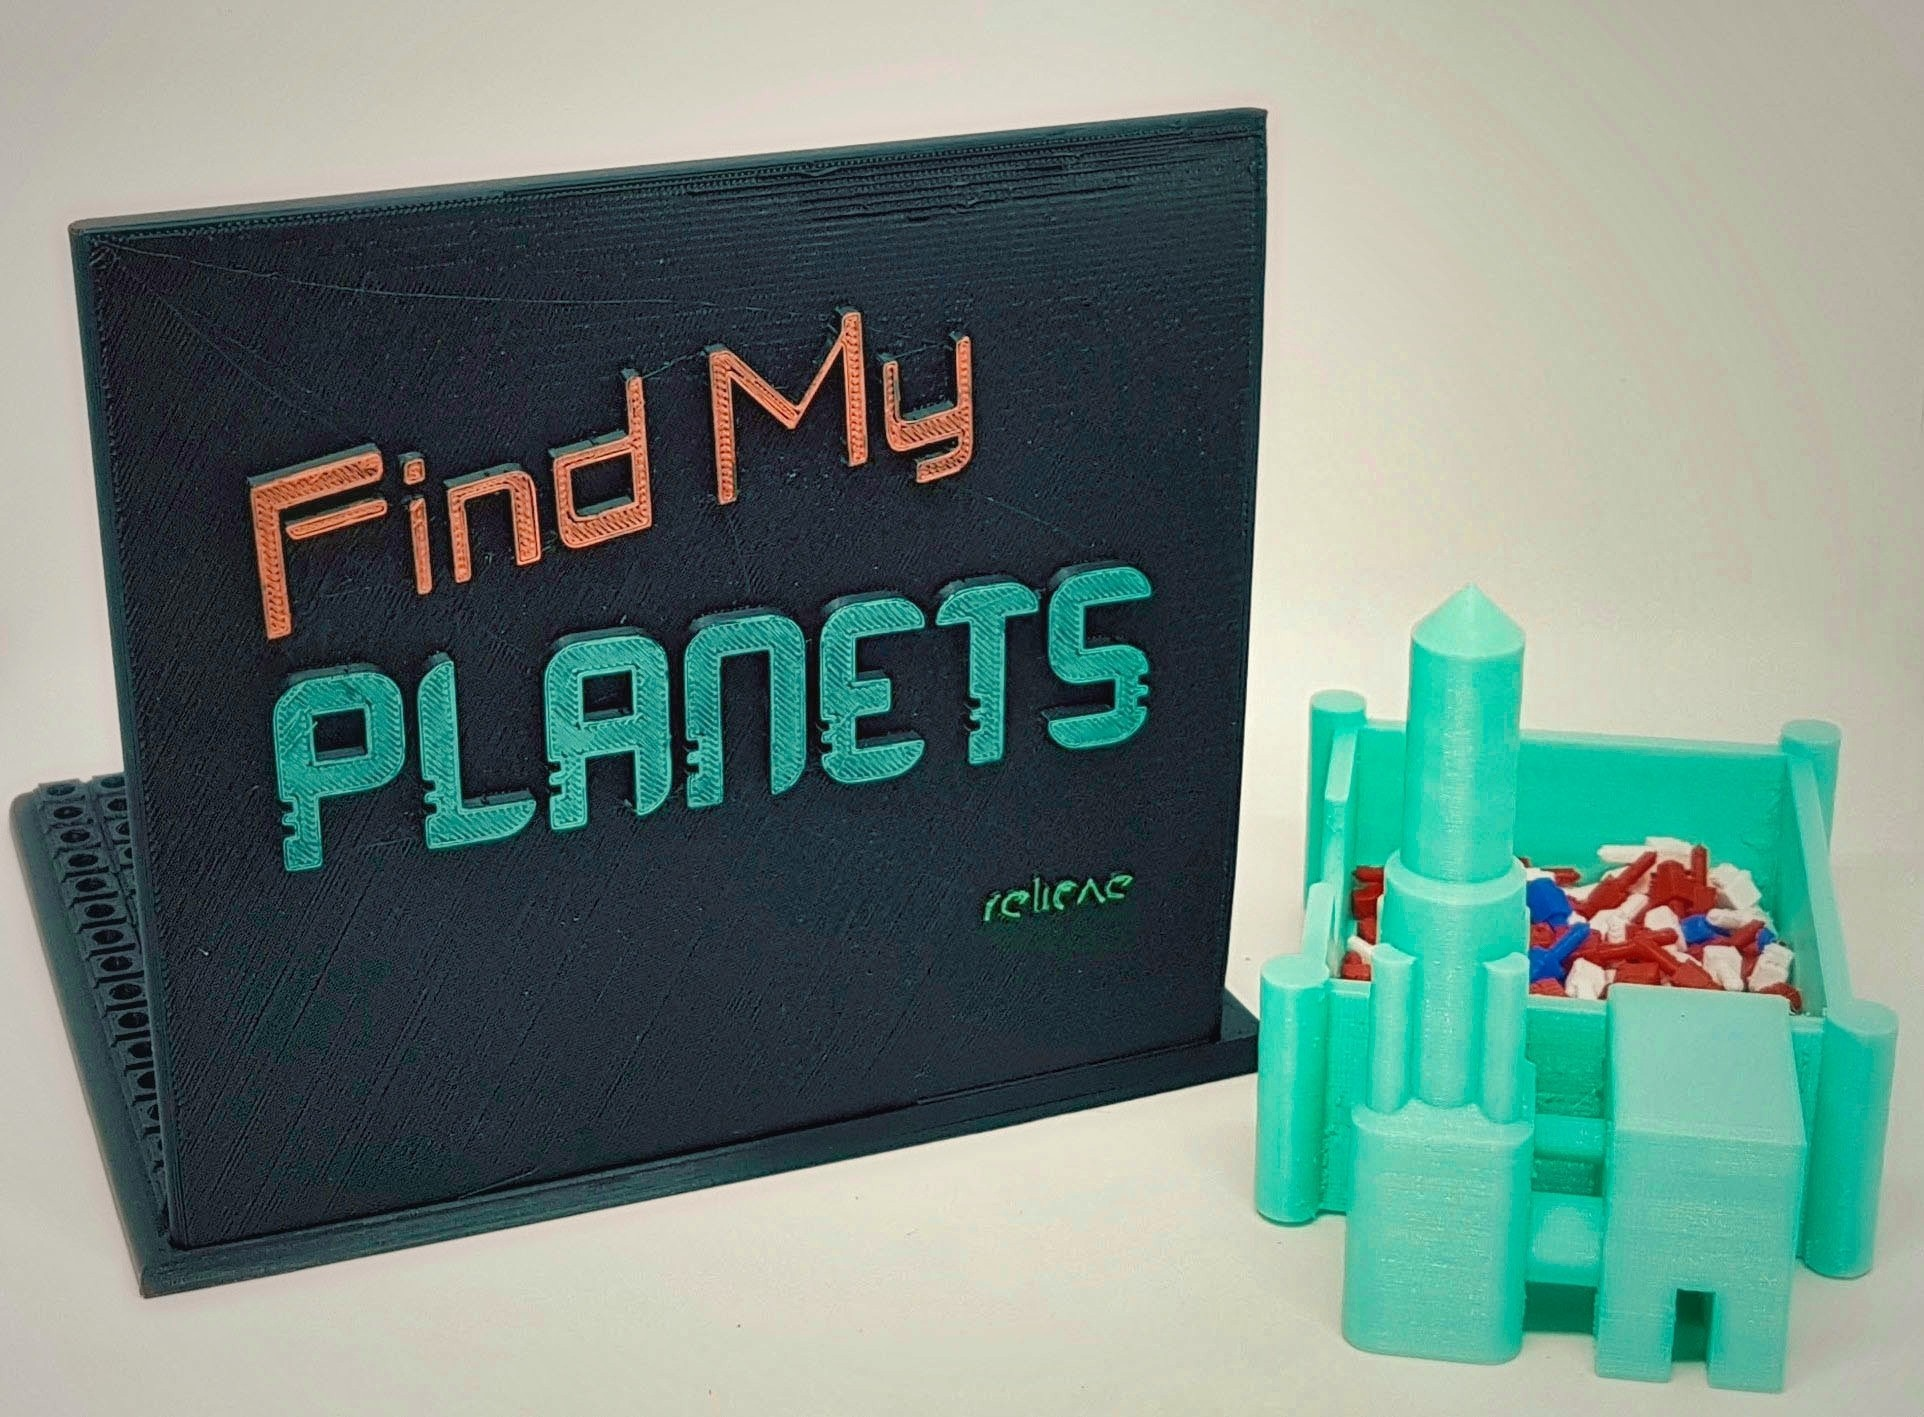 Find_My_Planets_3a_OK.jpg Download free STL file Find My Planets - Guessing Game (Battleship style) • 3D printer object, Relicae